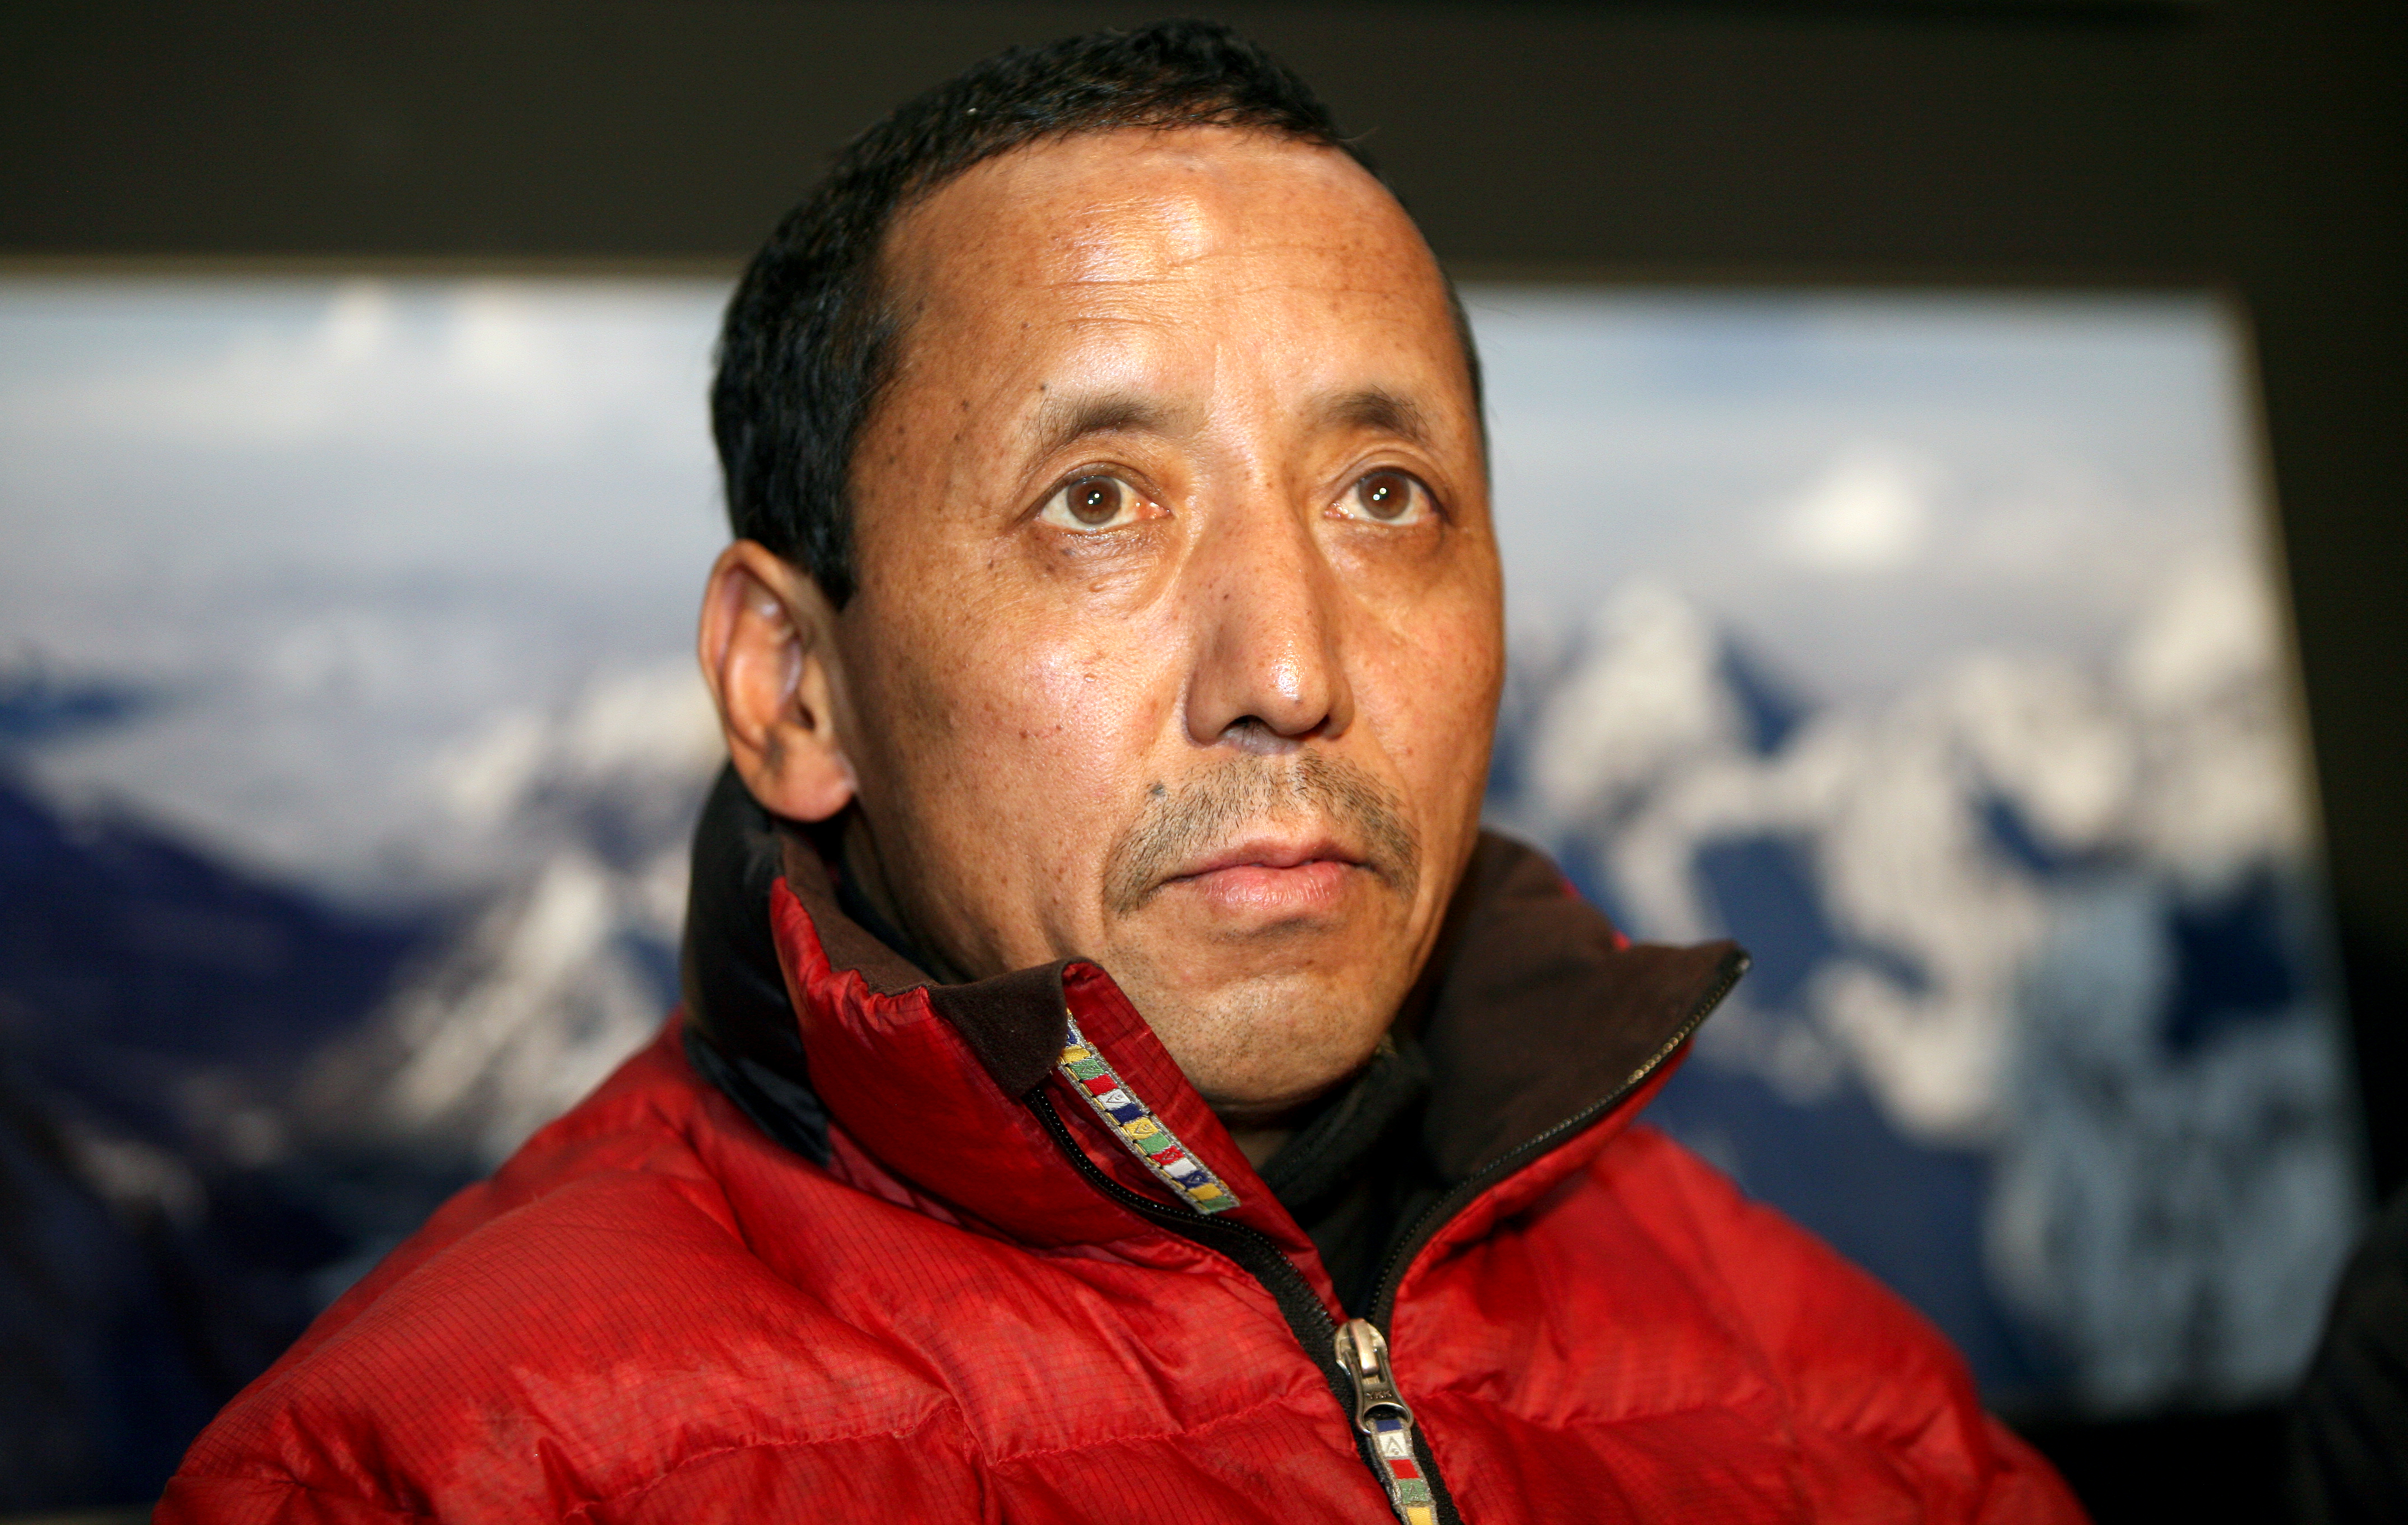 Nepalese sherpa mountaineer Apa Sherpa visit on November 23, 2009 in Lednice, Czech republic. Man reach the summit of Mount Everest 21 times more than any other person.